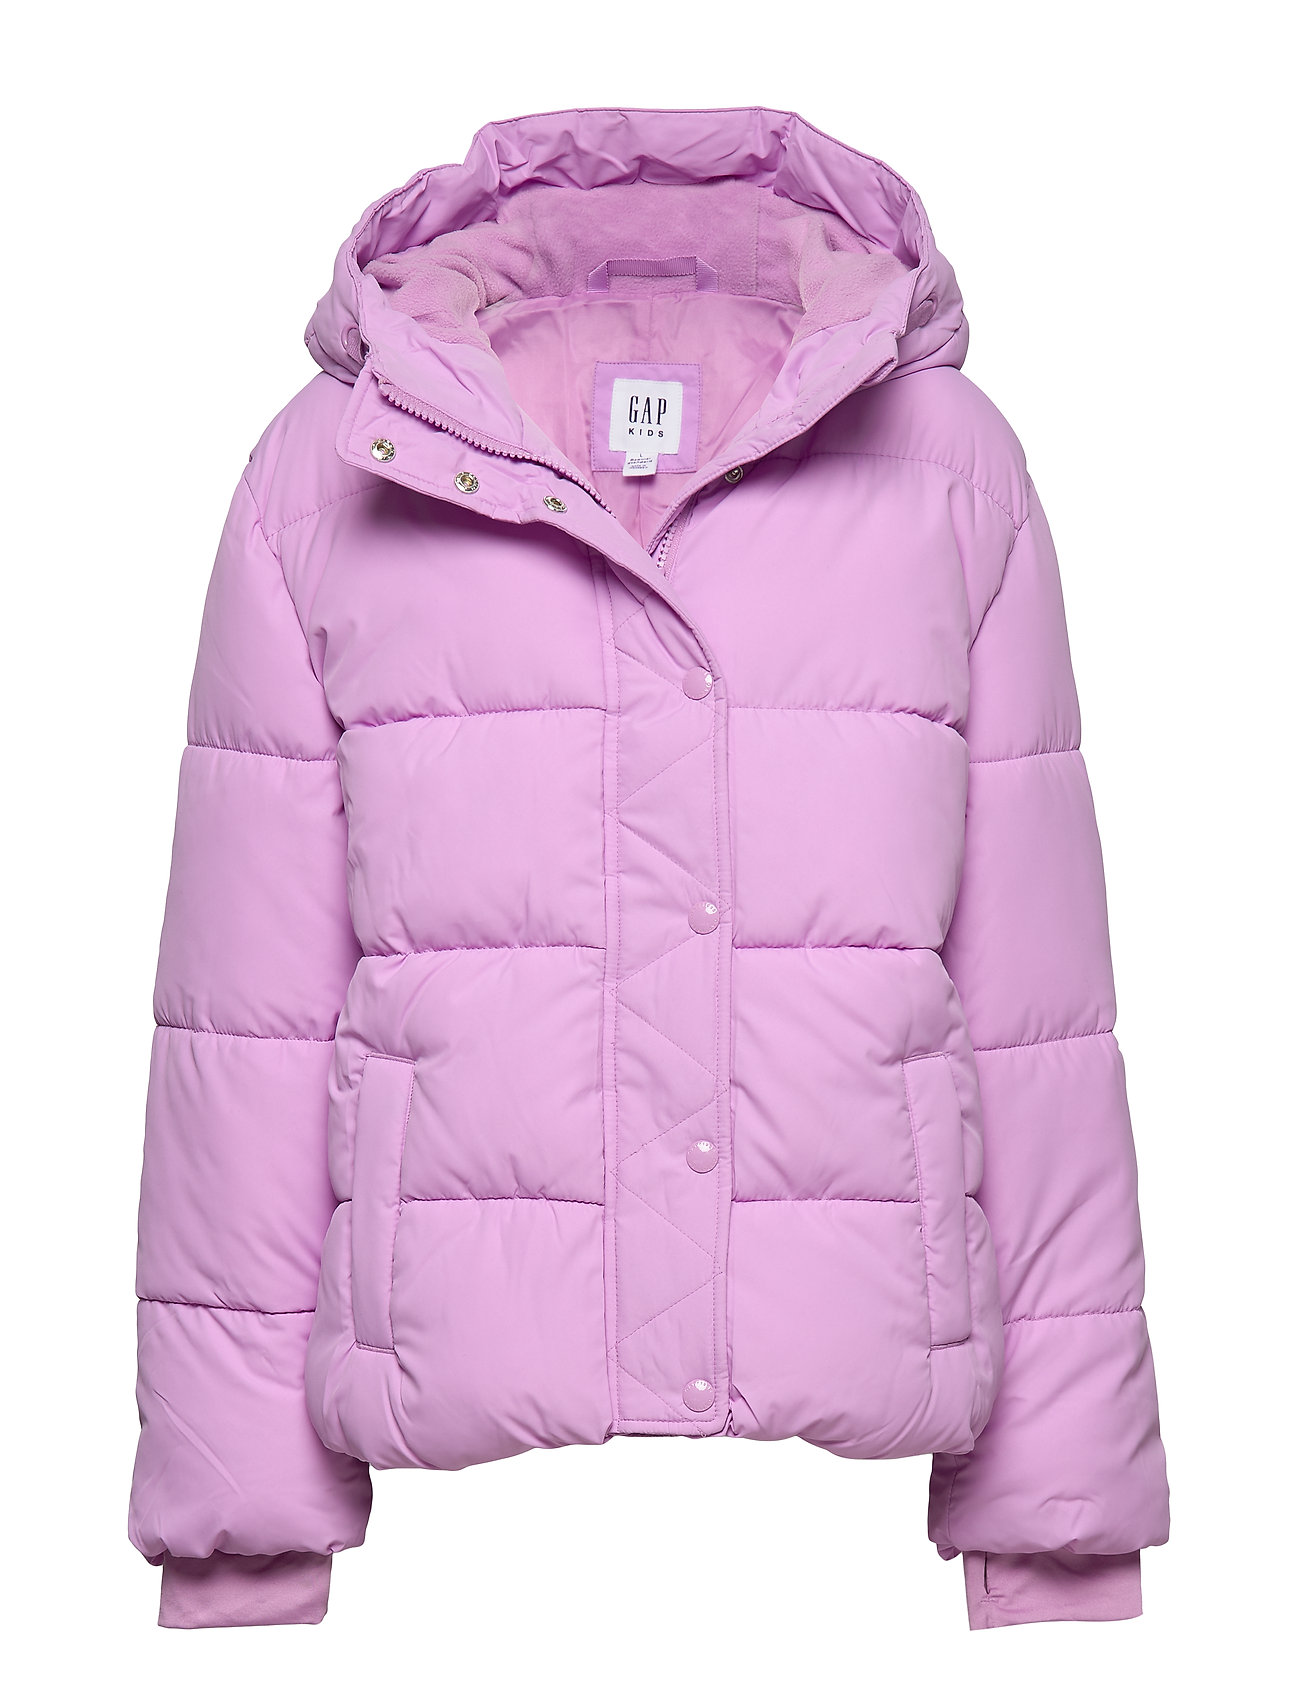 GAP Kids ColdControl Max Puffer - PURPLE ORCHID